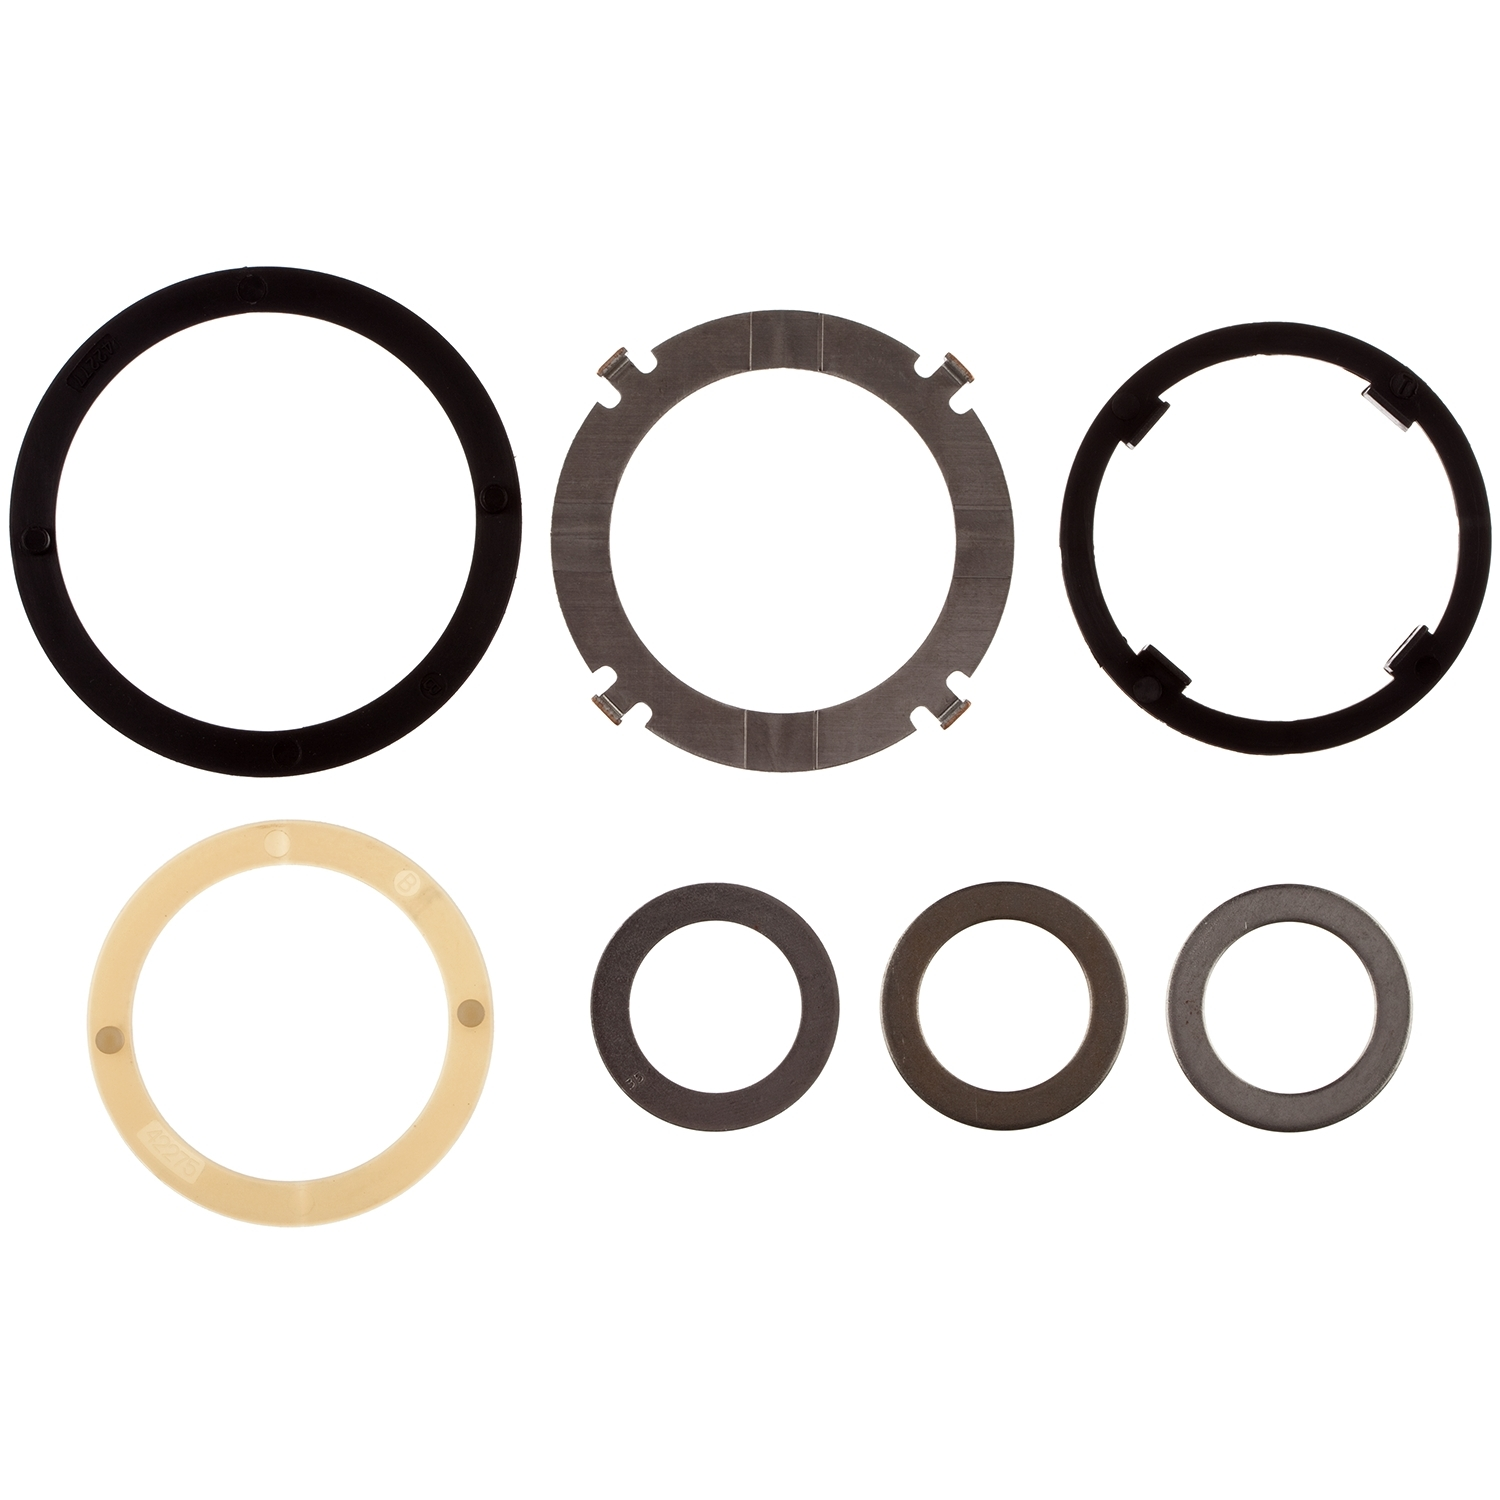 Automatic Transmission Planetary Carrier Thrust Washer